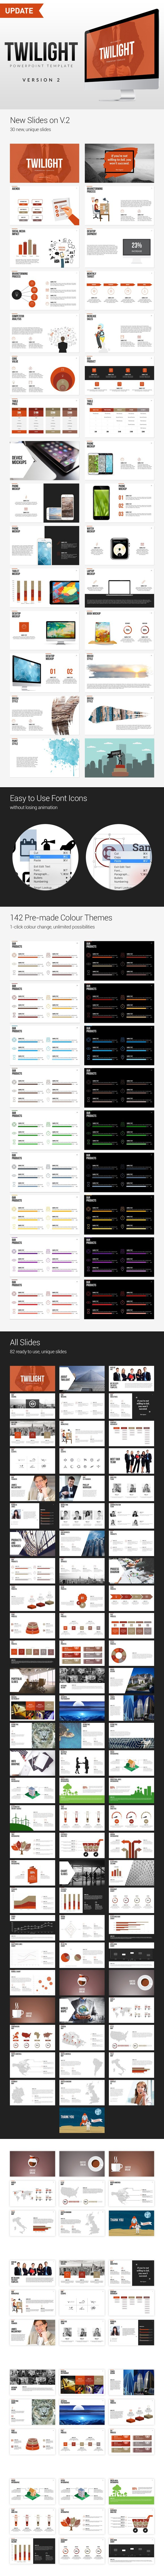 Twilight powerpoint template infographic template and power twilight powerpoint template toneelgroepblik Choice Image